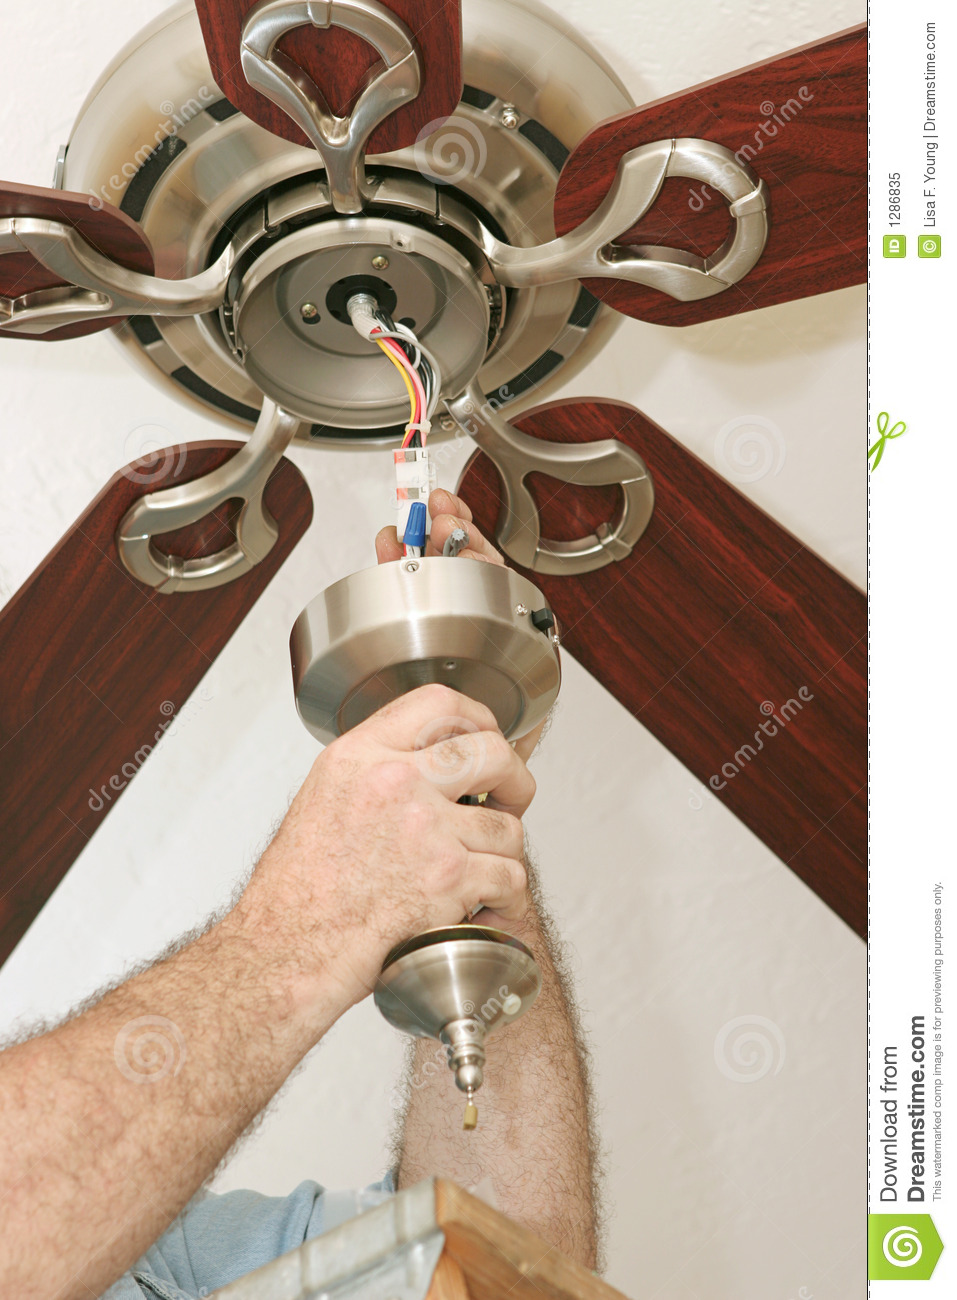 Wiring Ceiling Fan Stock Image  Image Of Professional